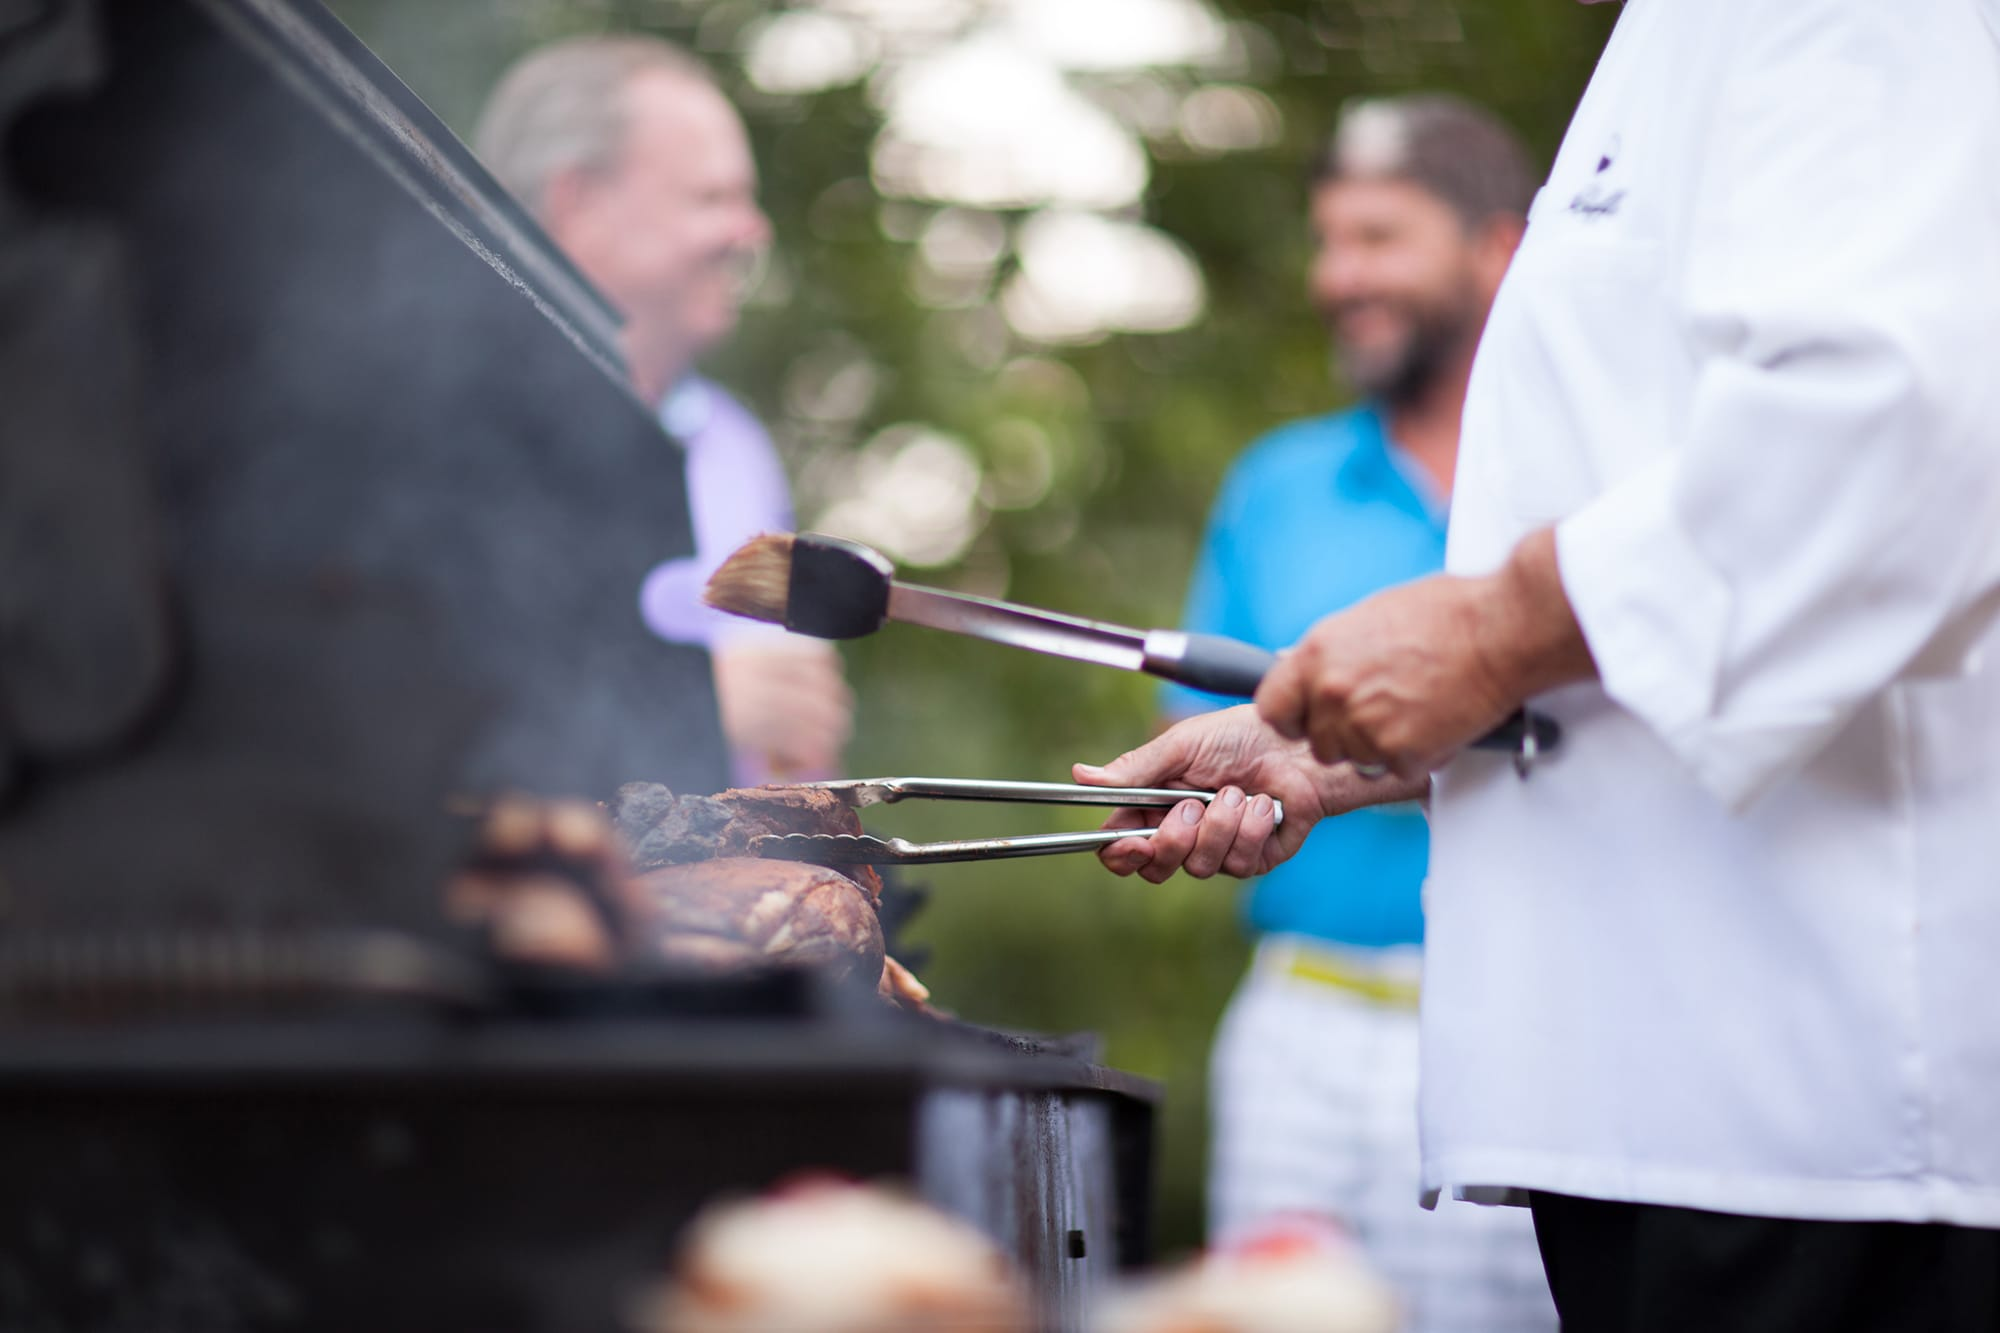 Chef mastering the grill